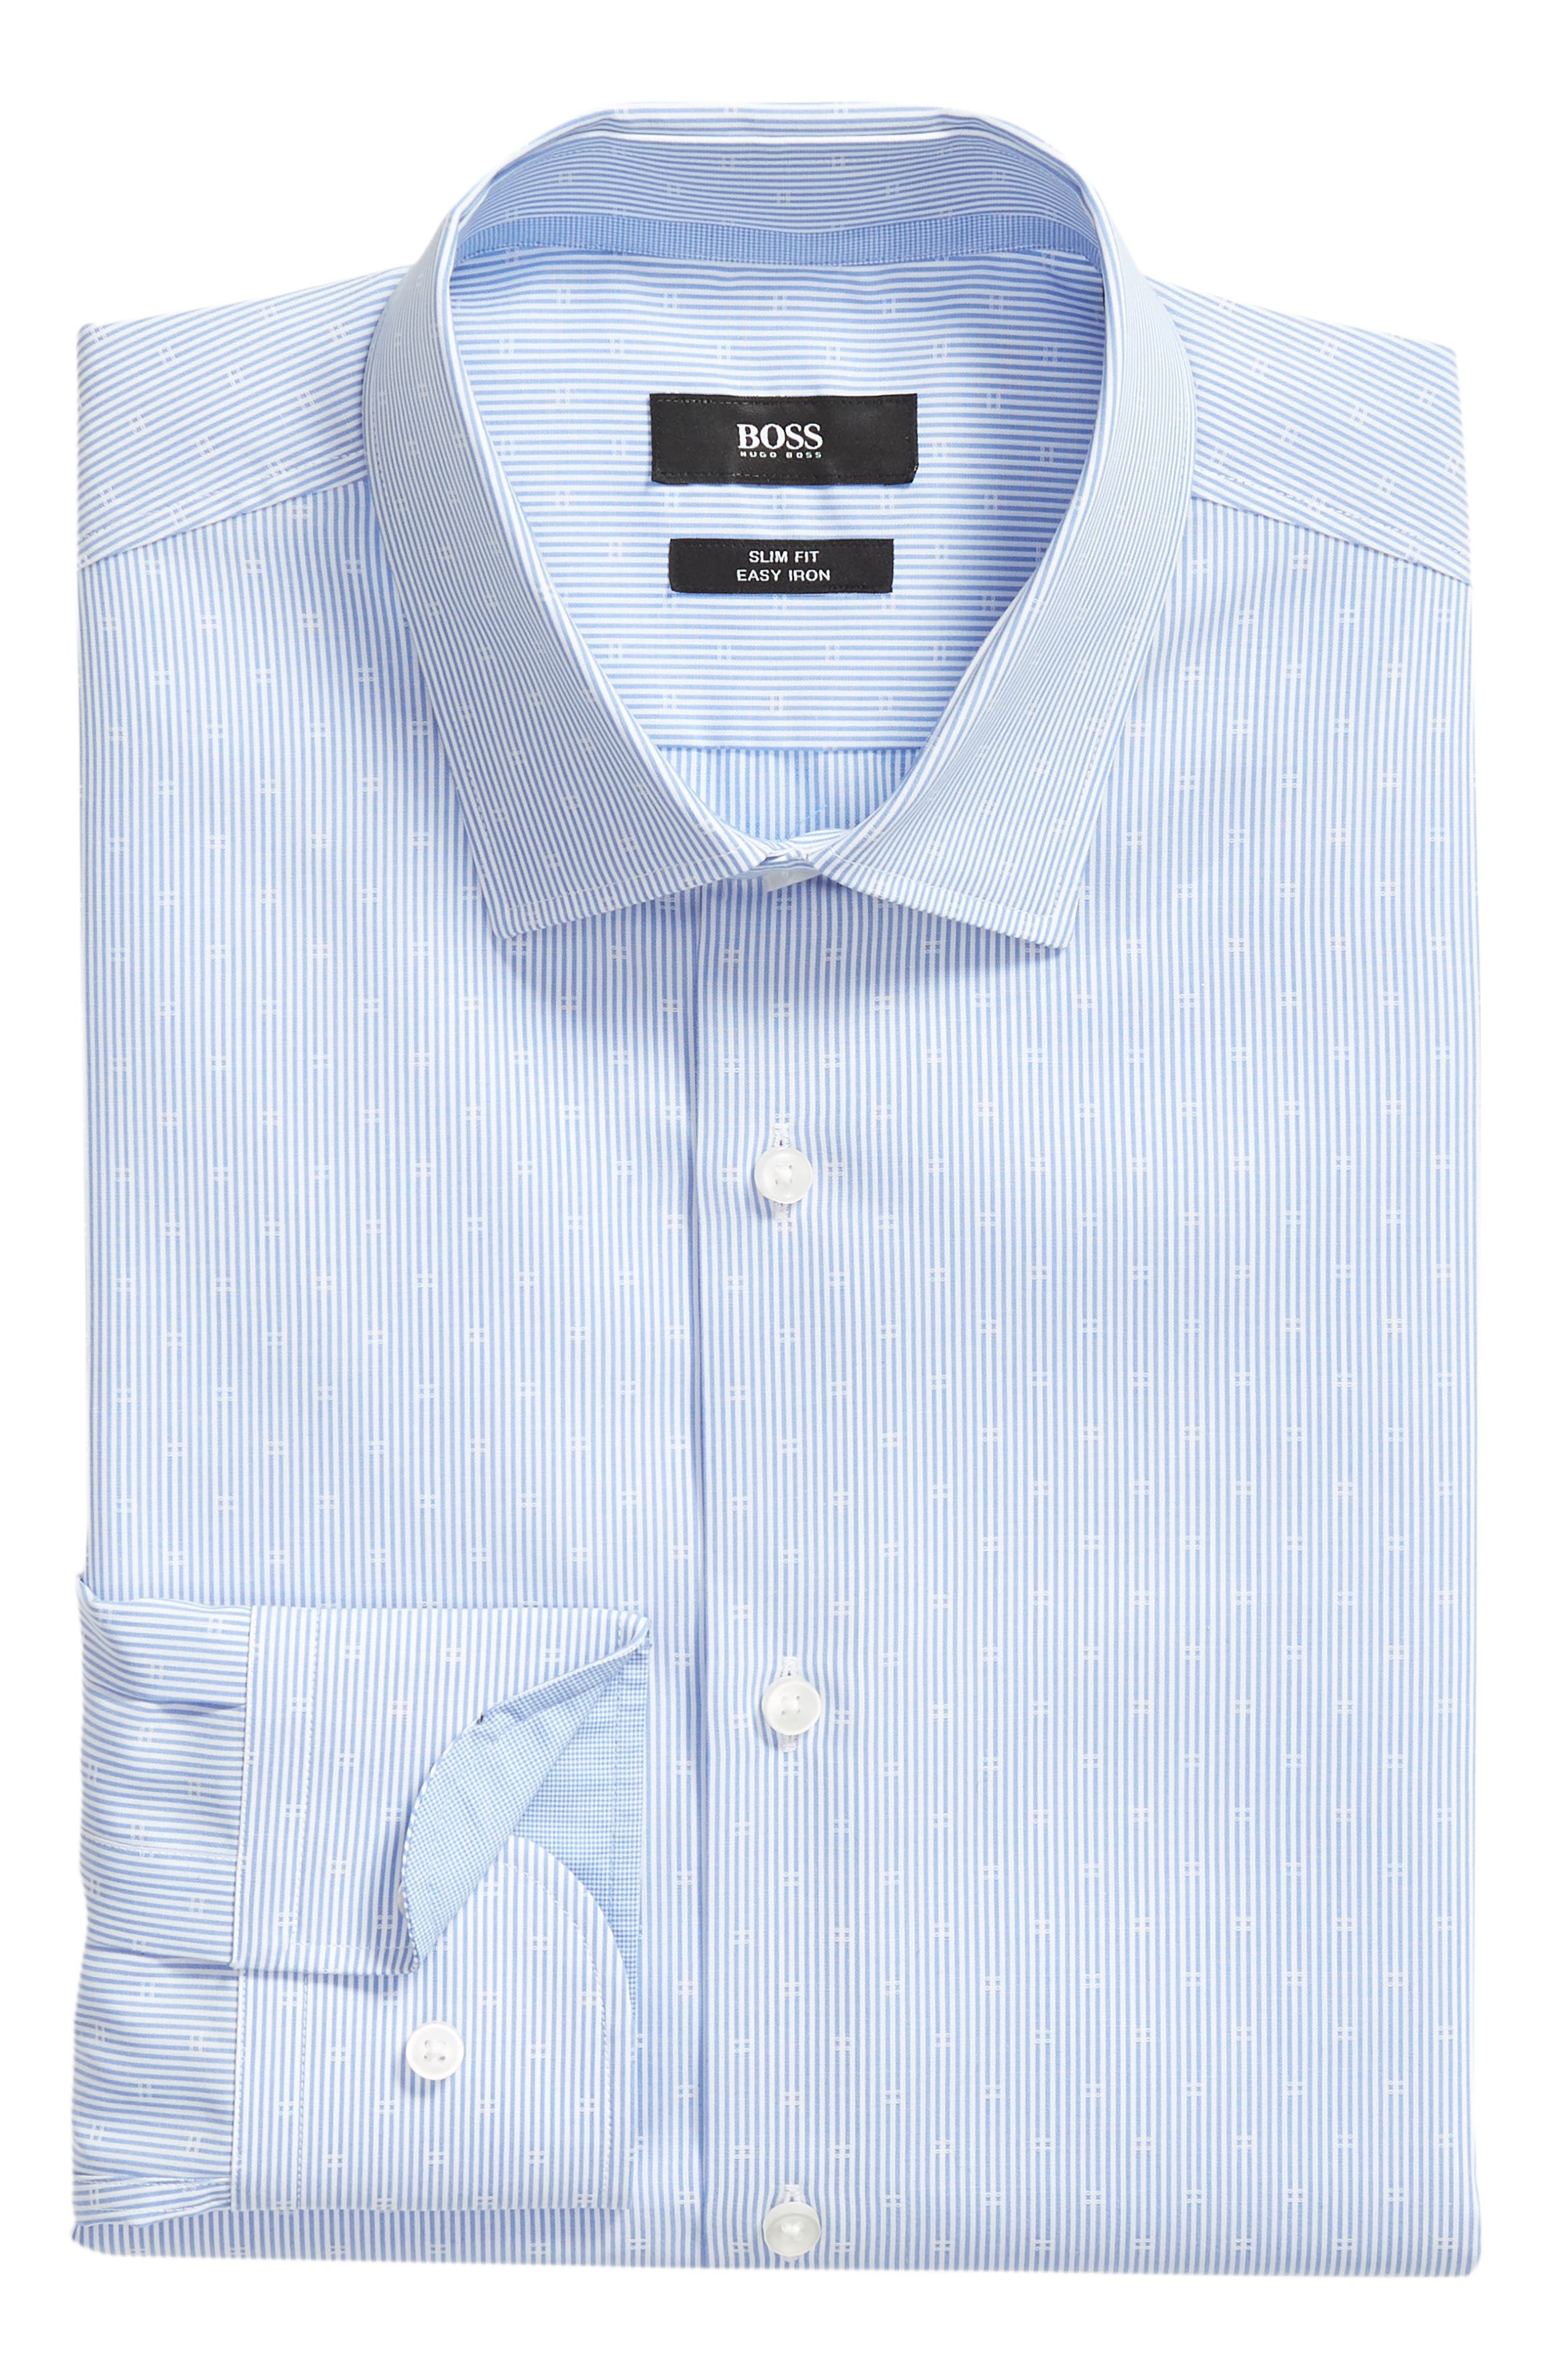 Jesse Slim Fit Stripe Dress Shirt,                             Alternate thumbnail 5, color,                             BLUE